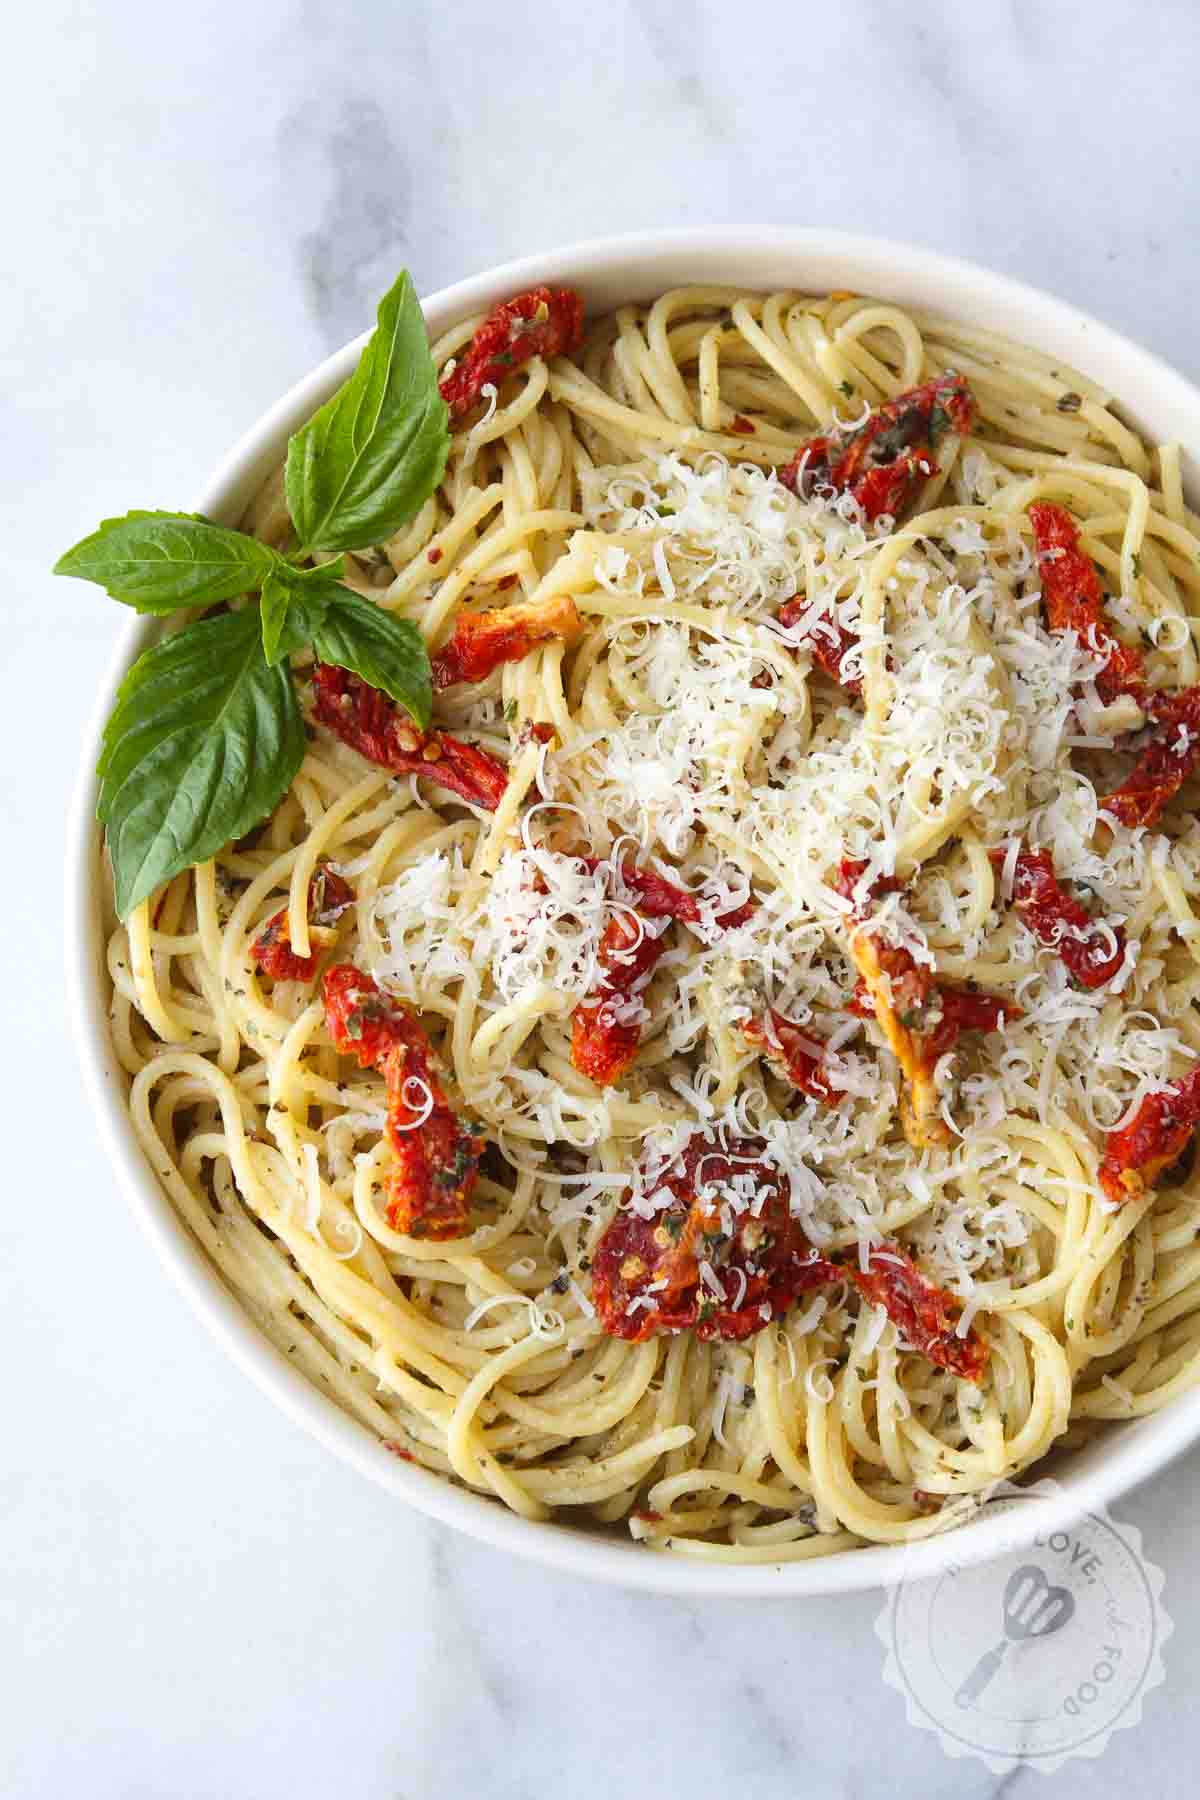 Garlic pasta with sun-dried tomatoes on a plate.